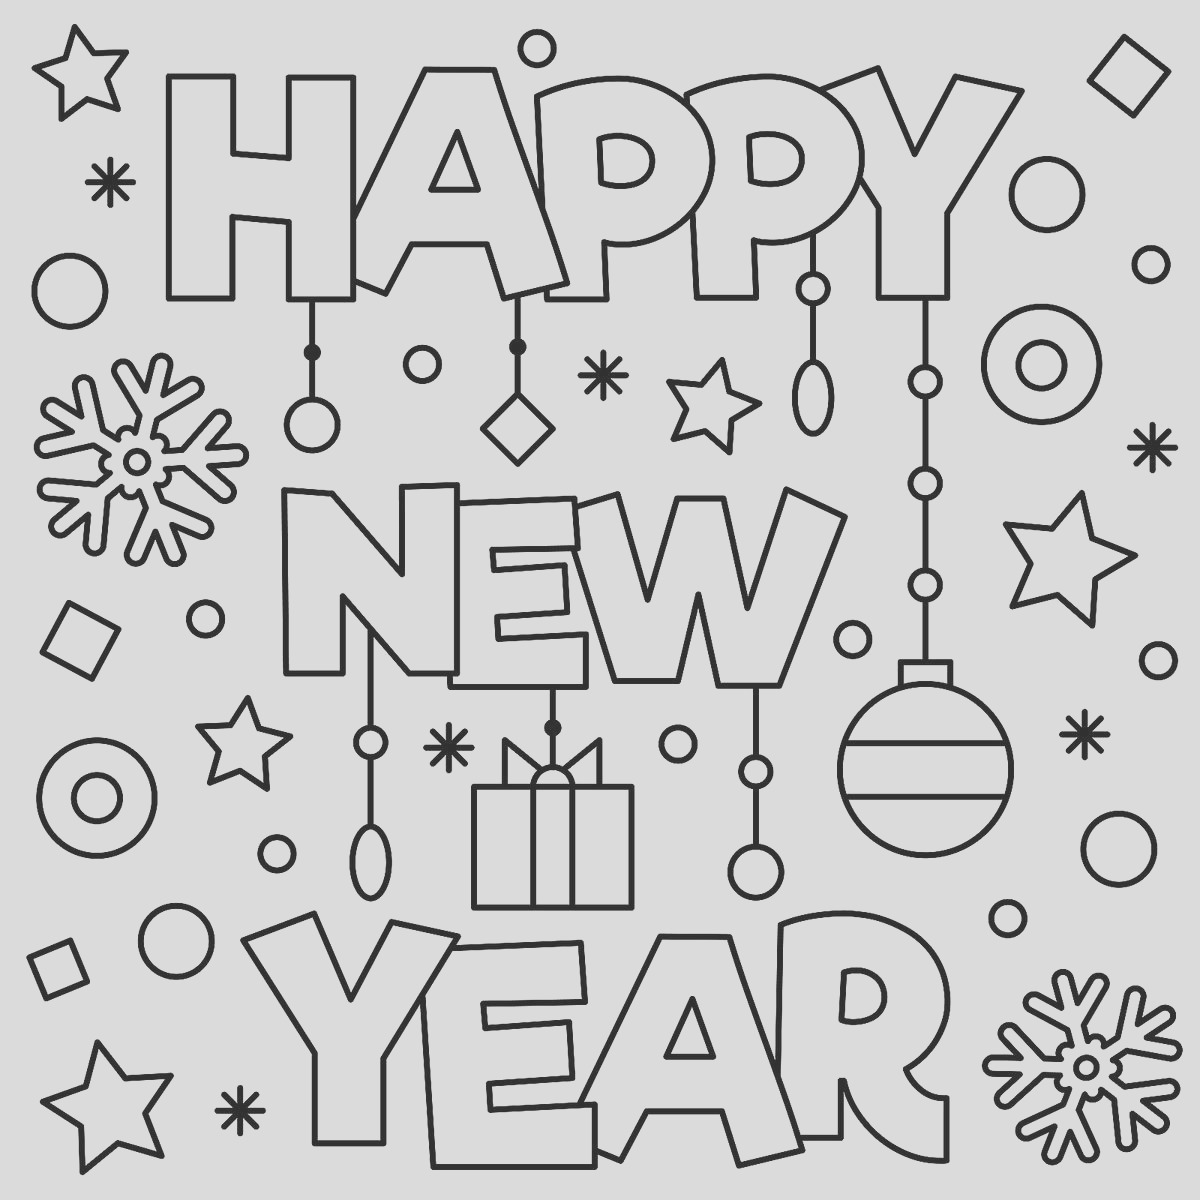 New Year January Coloring Pages Printable Fun to Help Kids Wel e 2018